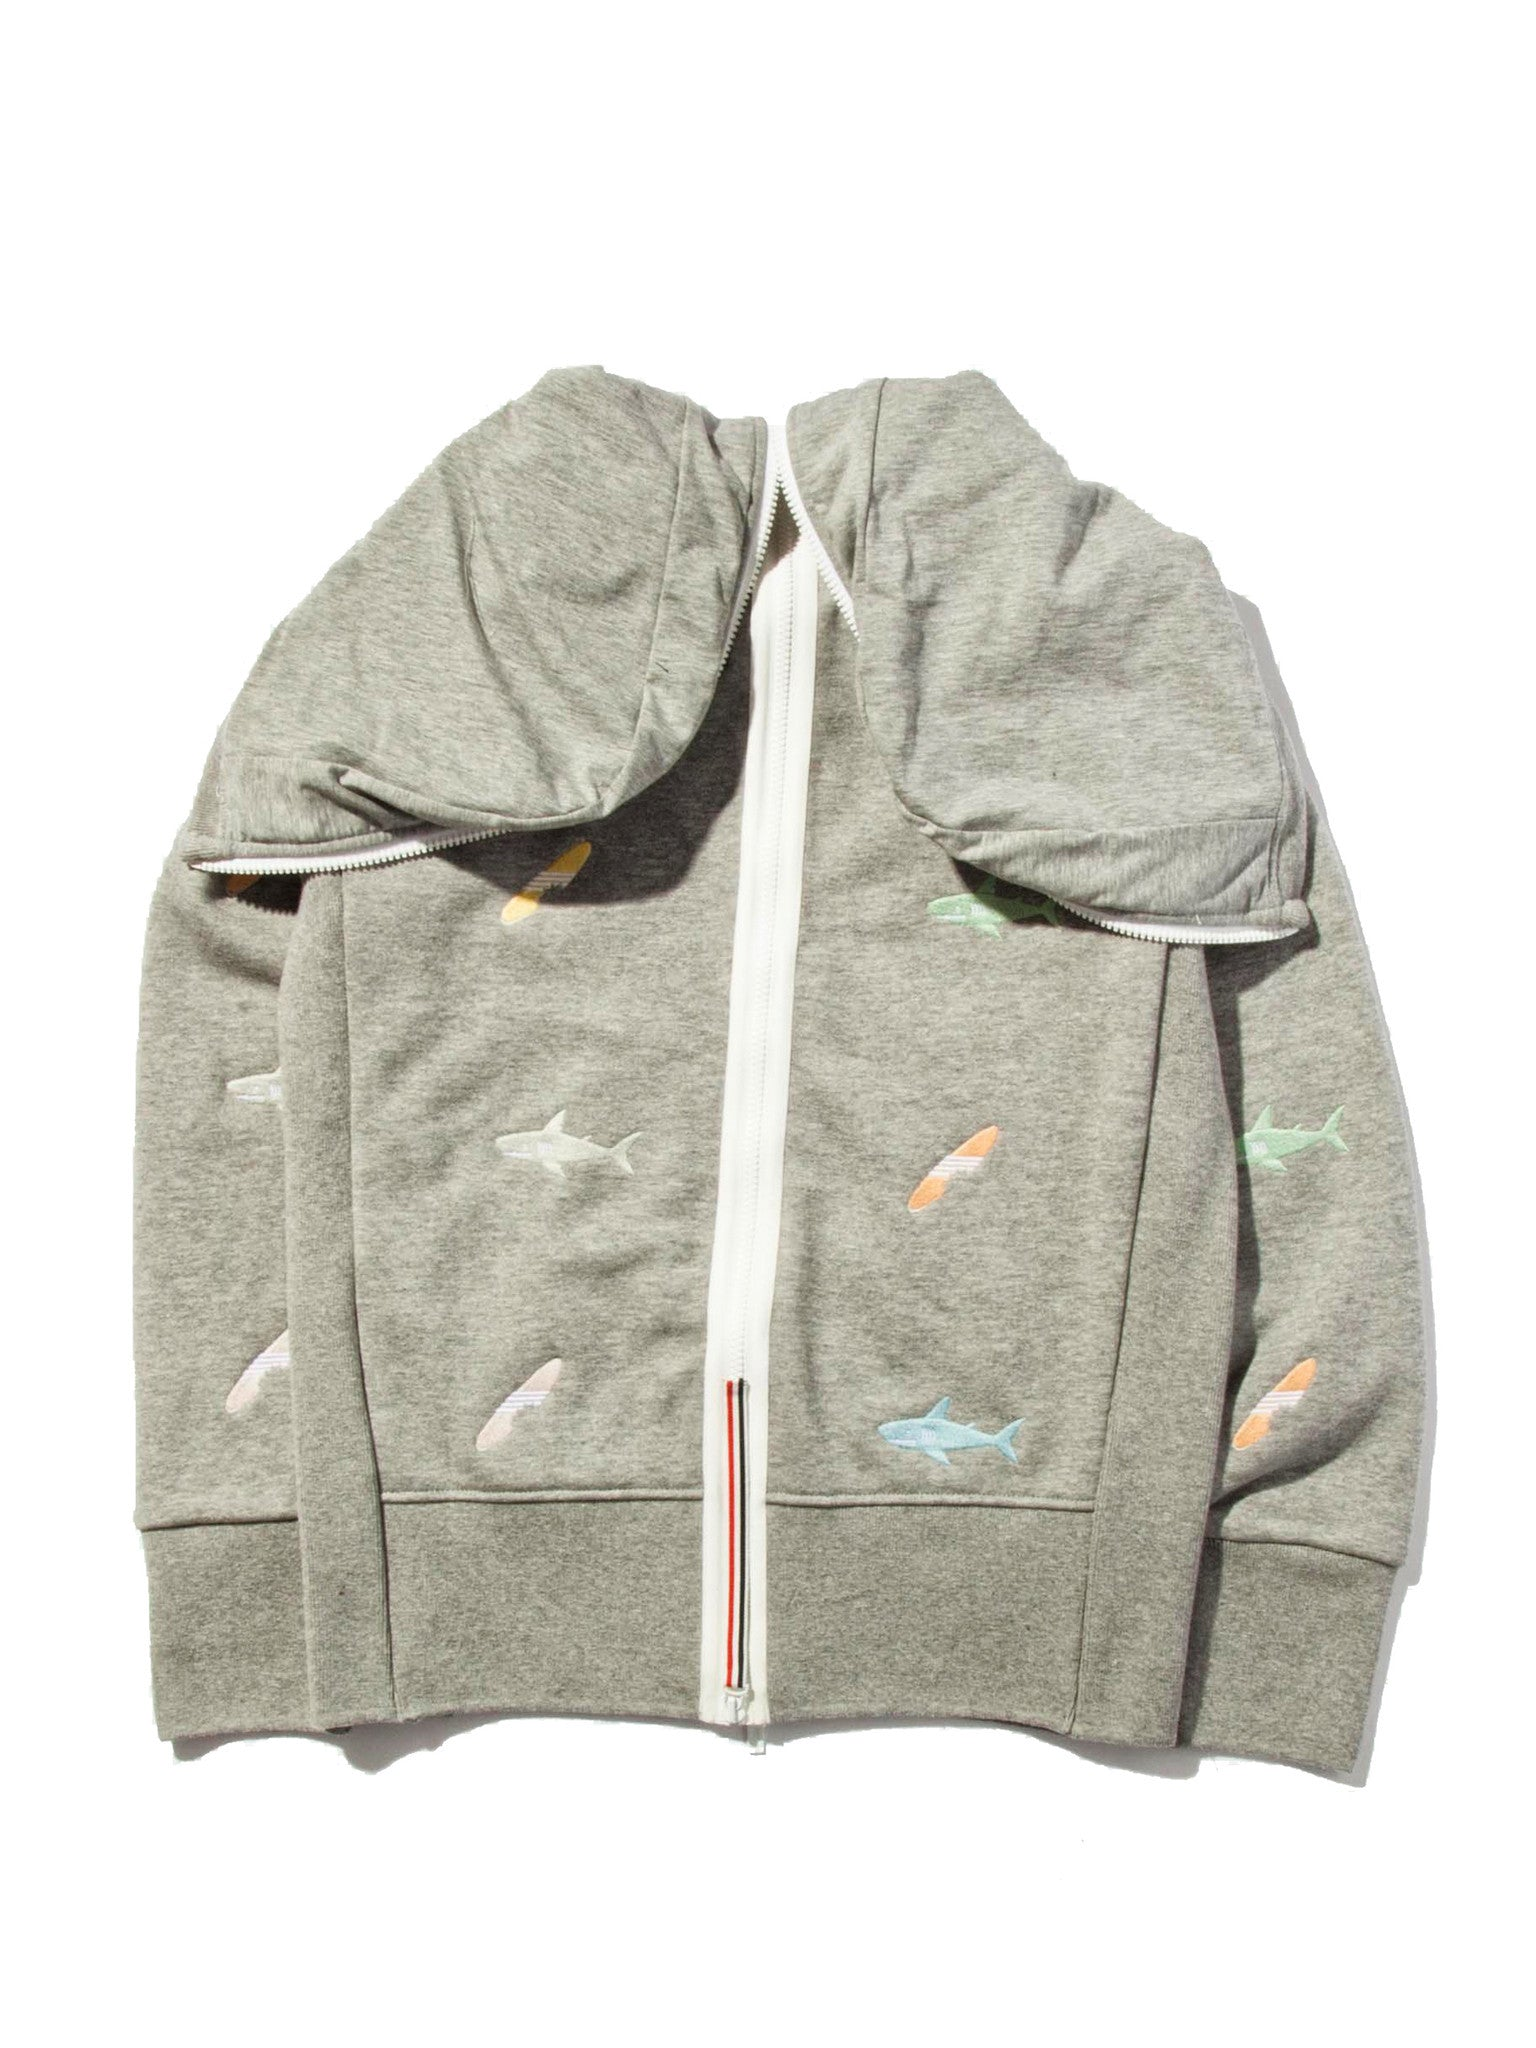 Light Grey Classic Zip Up Hoodie (Aqua Zip Loop Back) 8